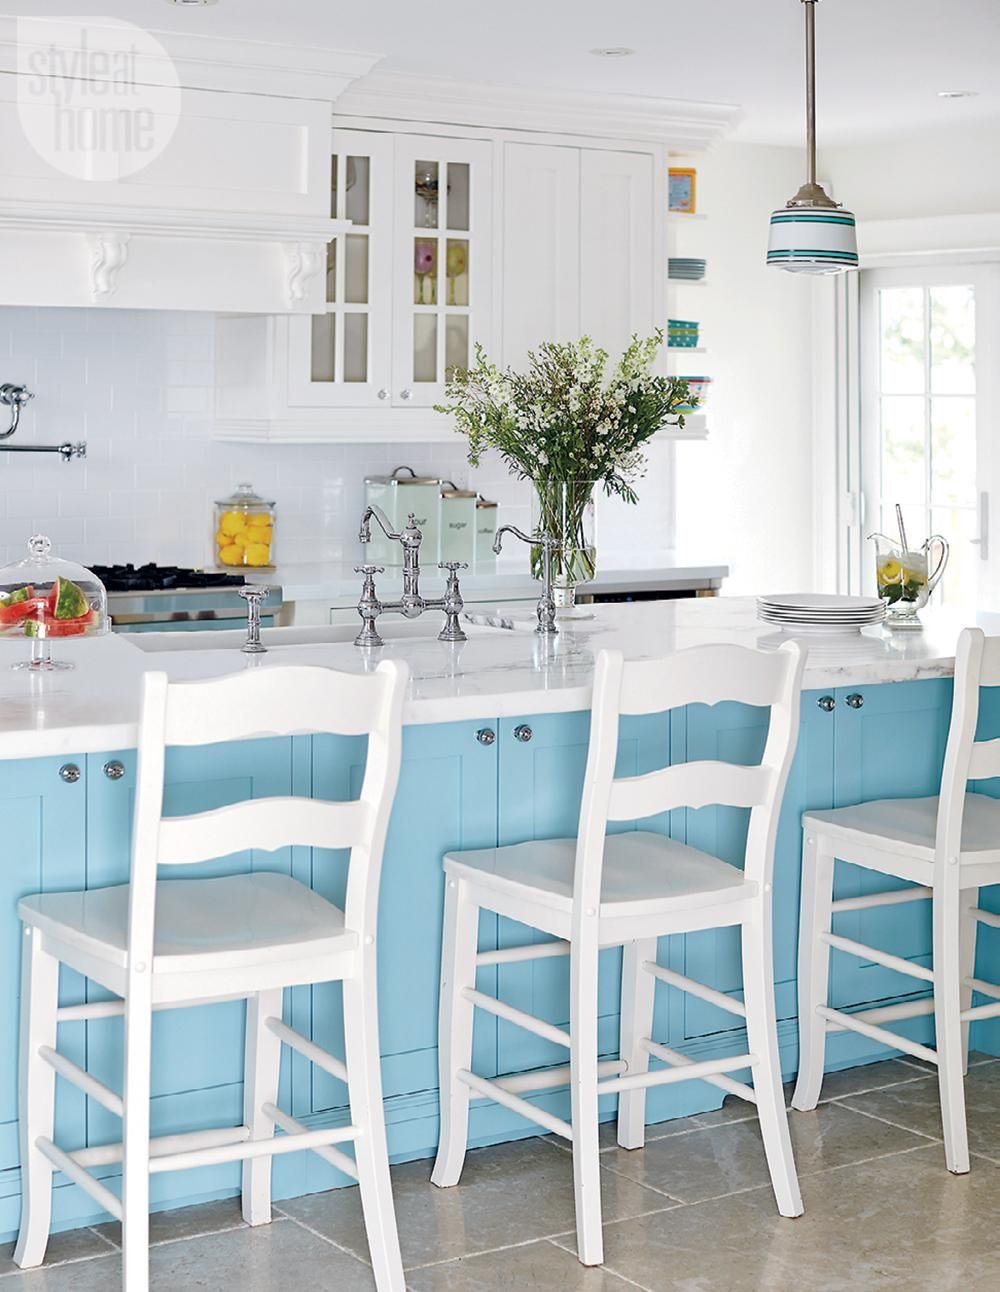 House tour: Eclectic shabby chic | Houses & Interiors | Pinterest ...